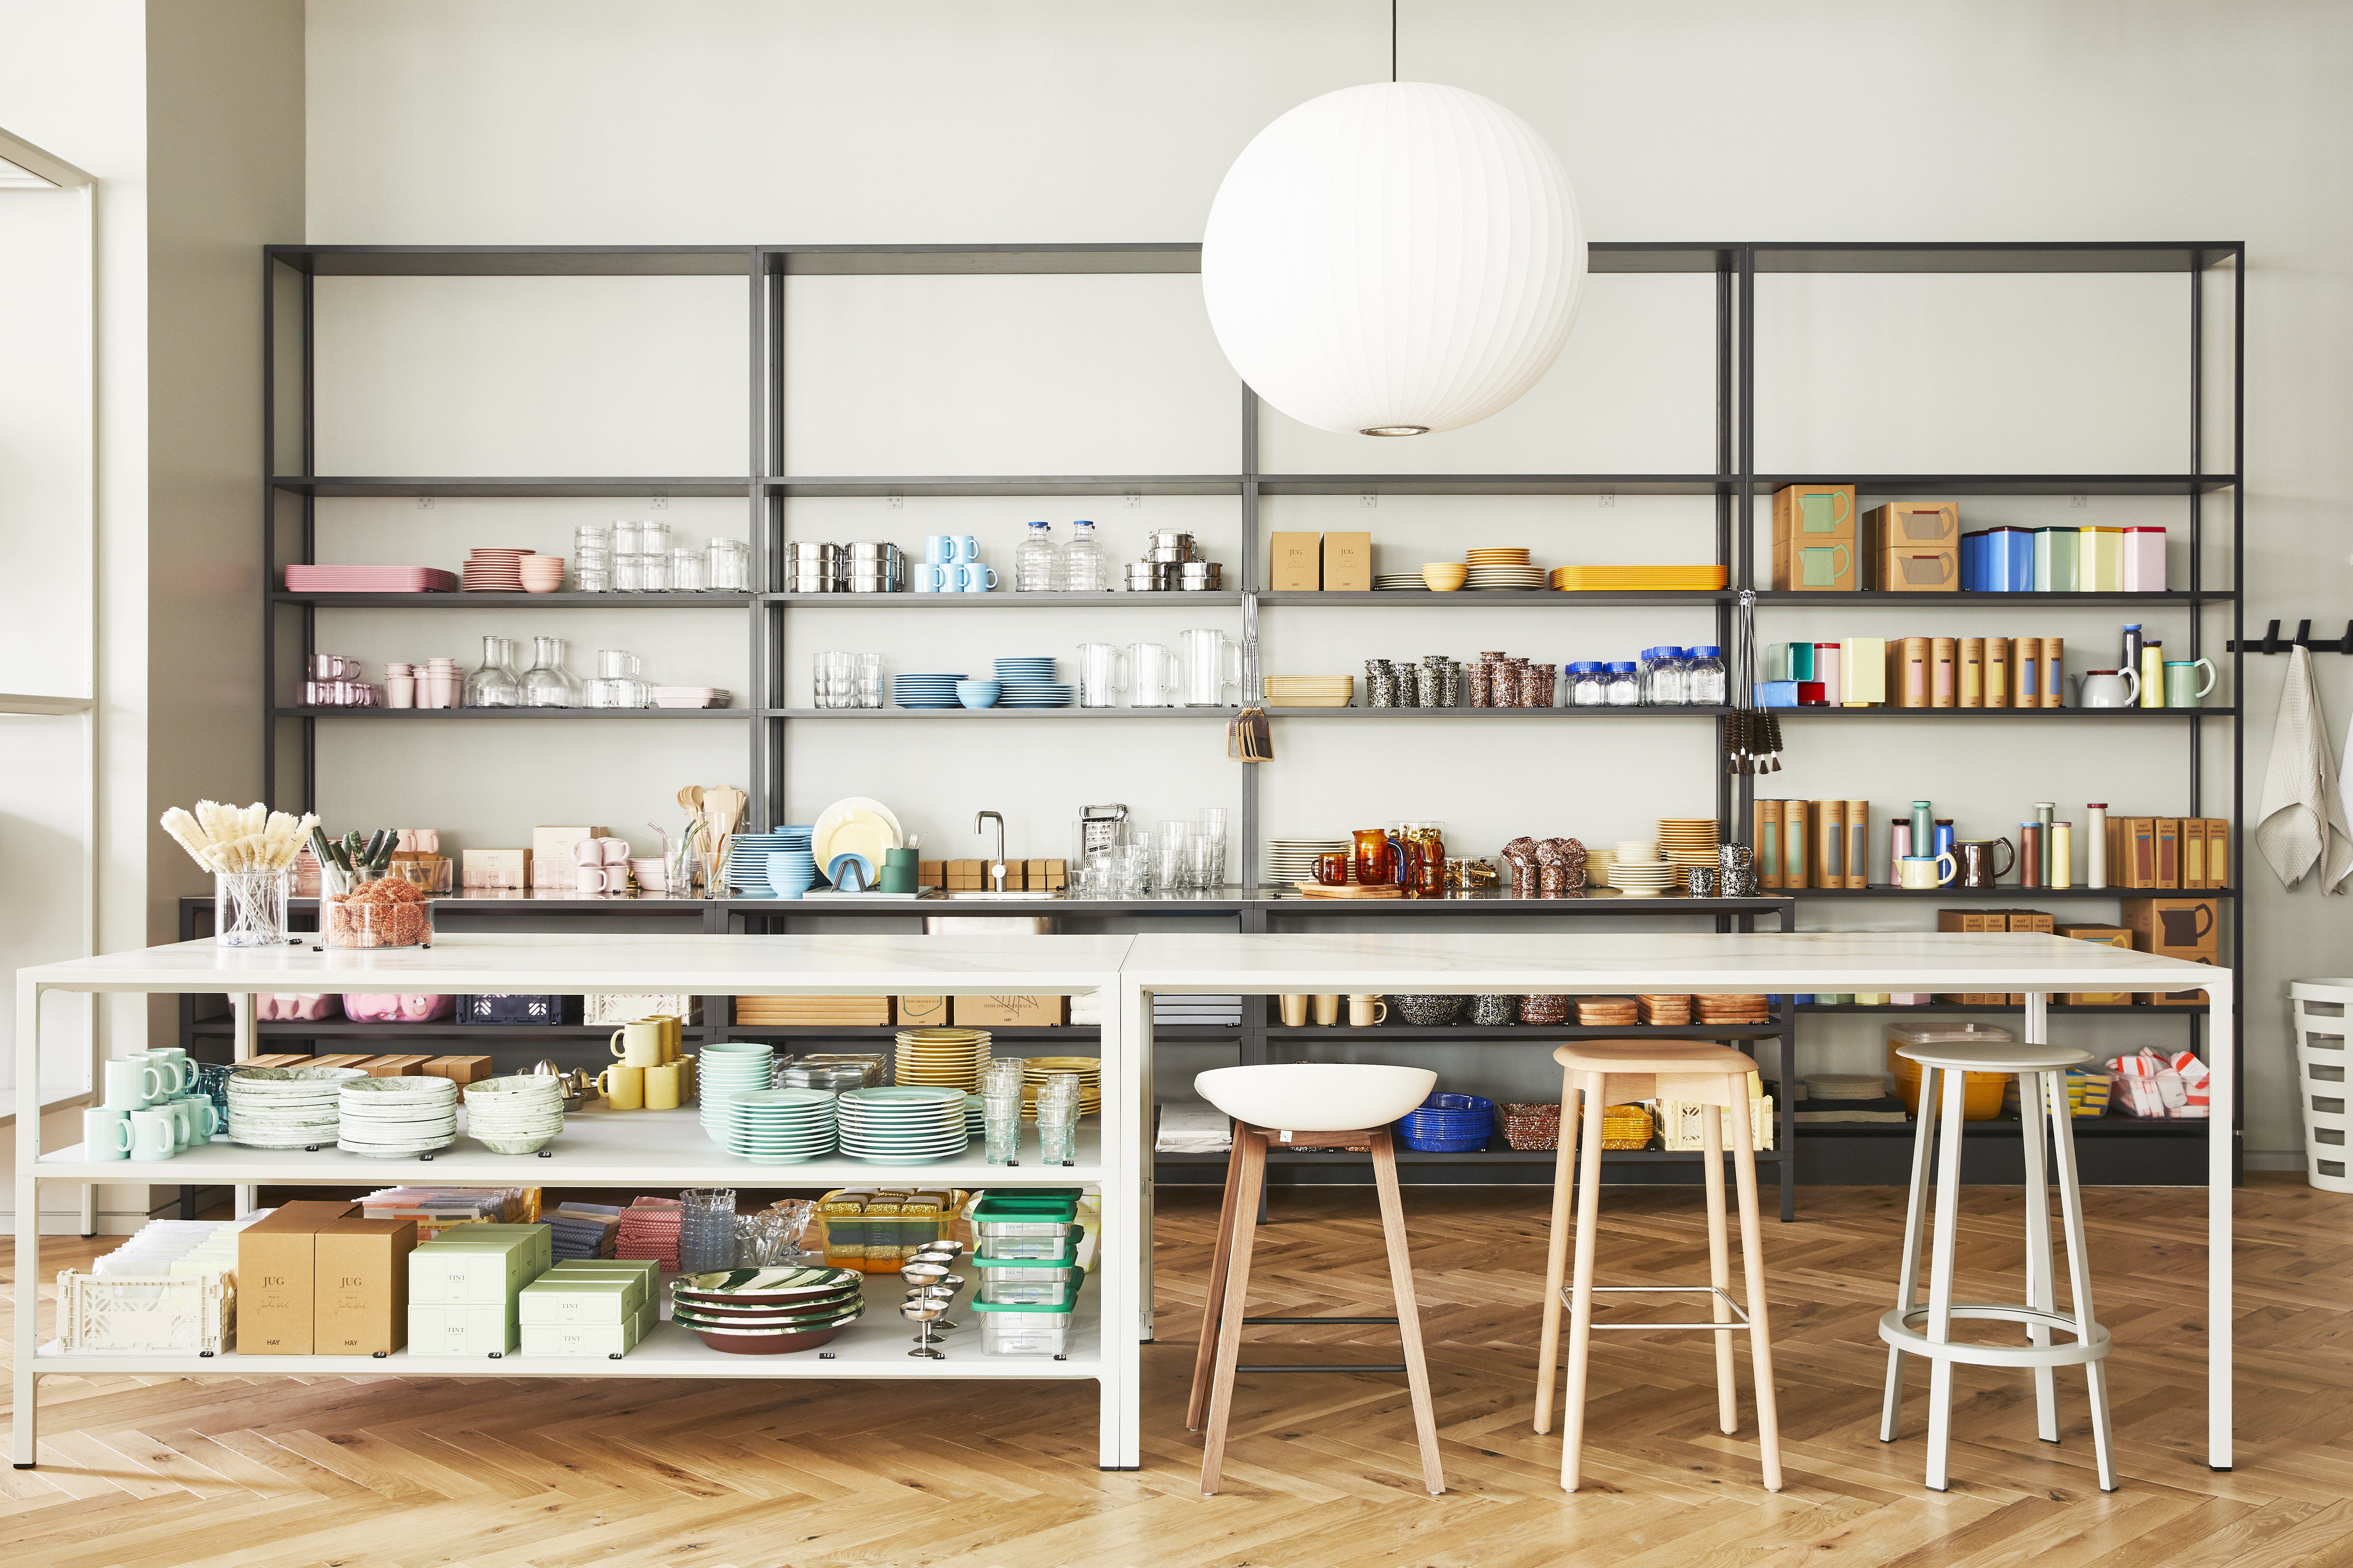 A gallery with shelves with stacks of modern yet colorful plates, cups, utensils, and serving dishes.